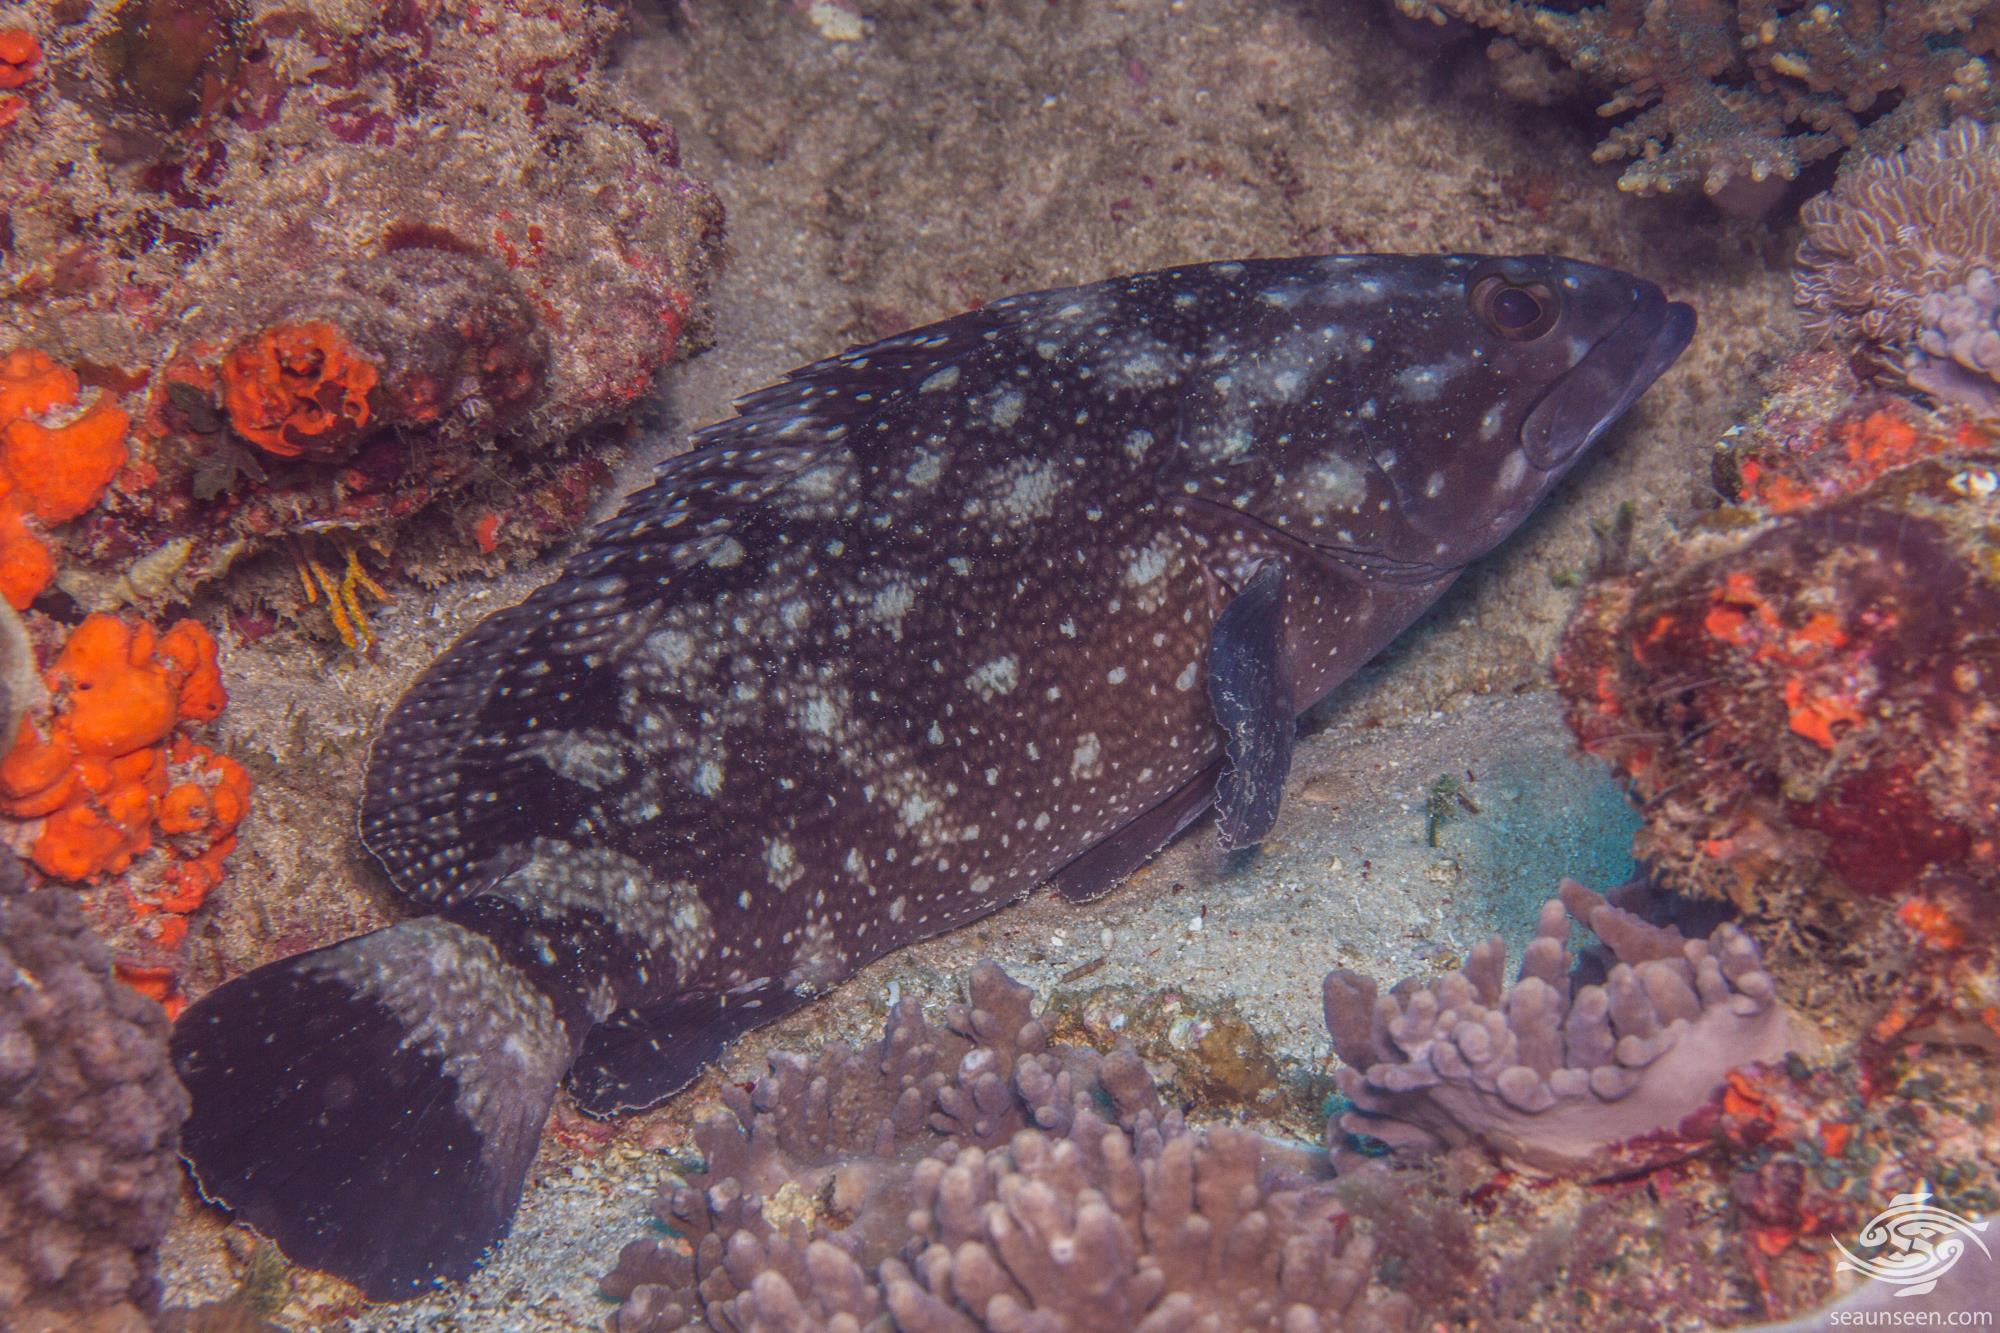 Whitespotted grouper (Epinephelus coeruleopunctatus) is also known as the White Spotted Rockcod